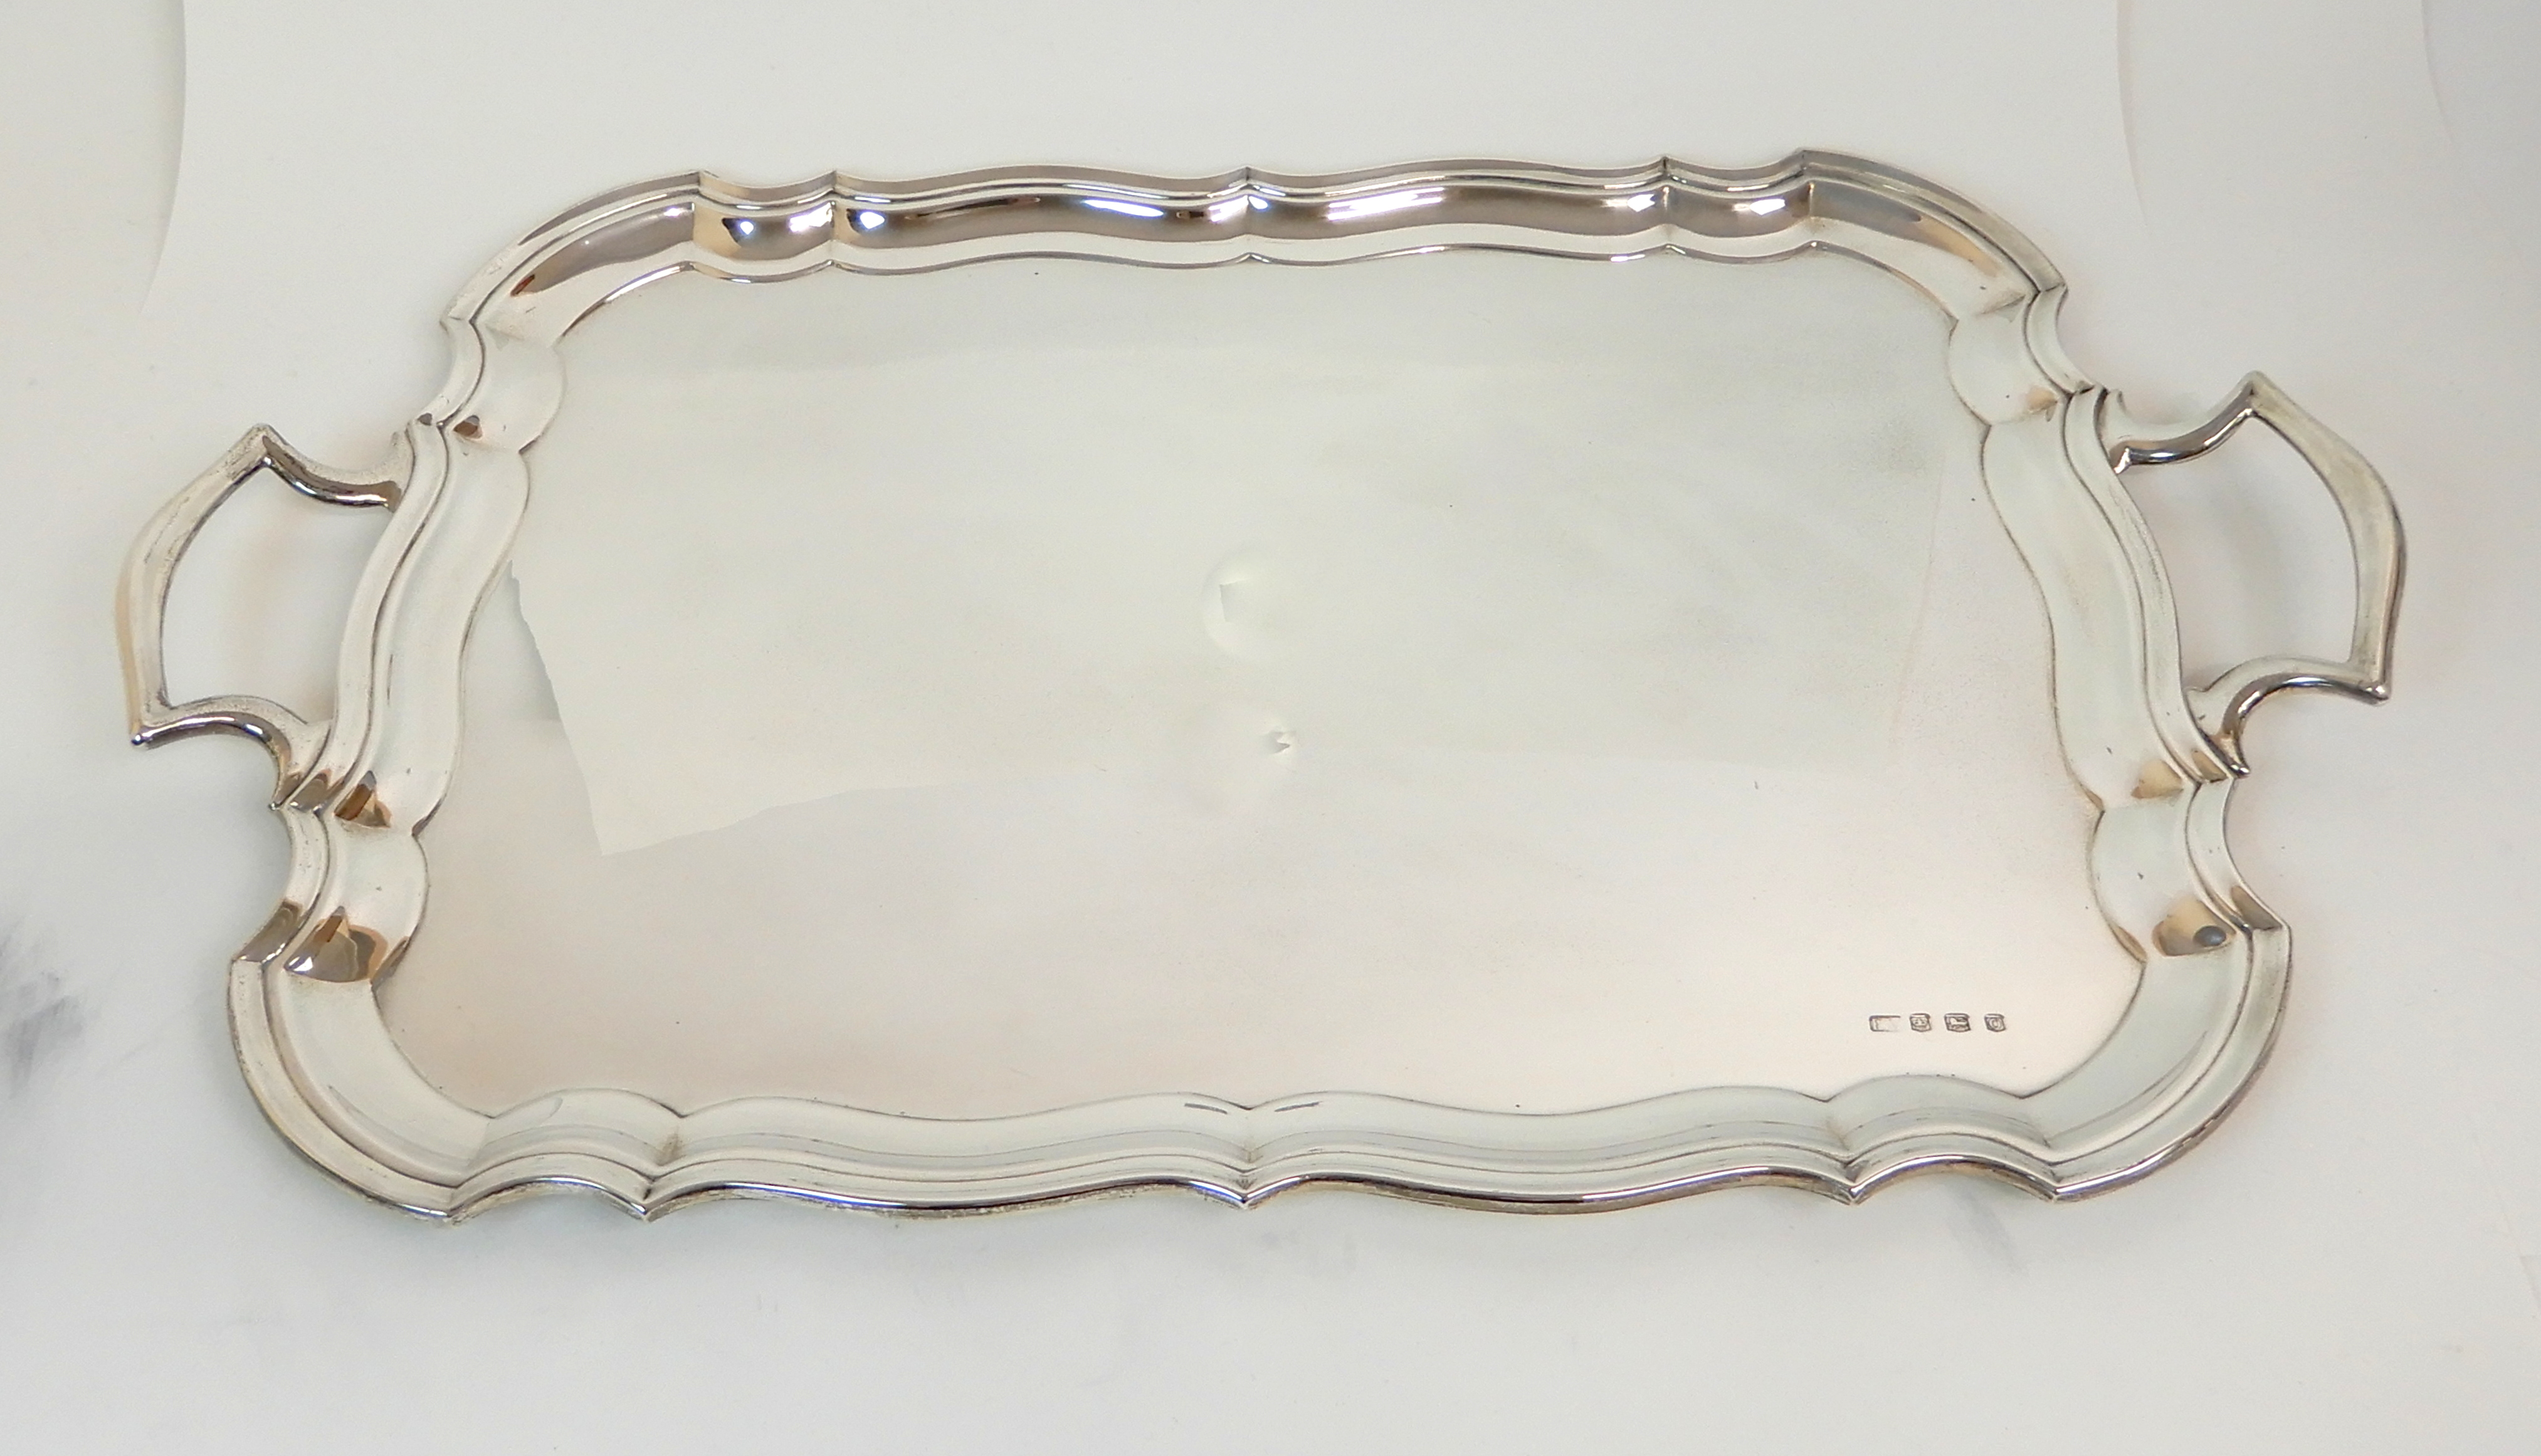 Lot 127 - A SILVER SERVING TRAY by Emile Viner, Sheffield 1931, of rectangular form with raised scalloped edge